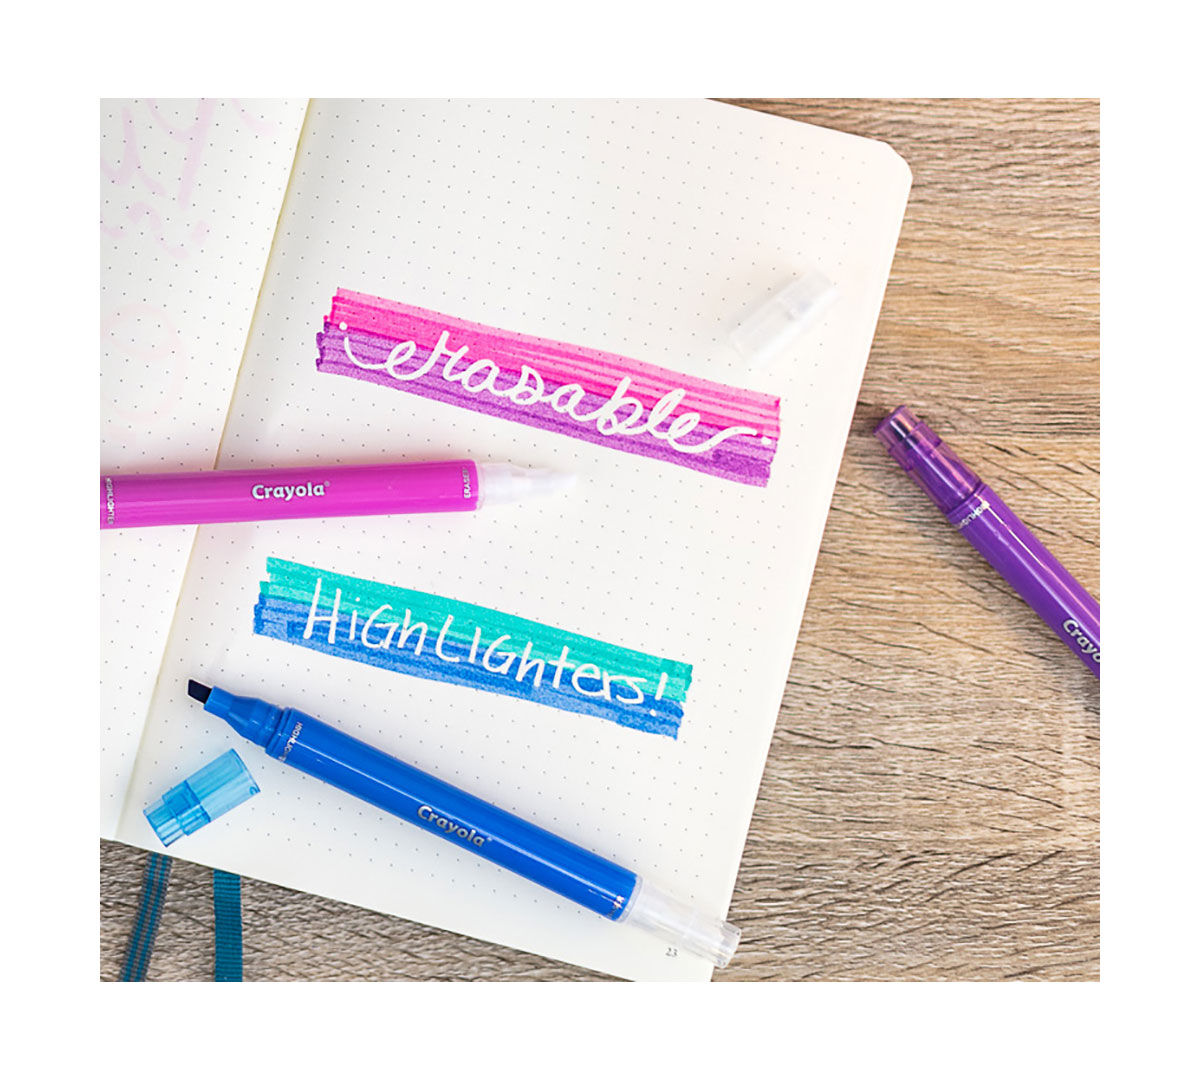 Crayola Take Note Erasable Highlighter Markers 6 Count